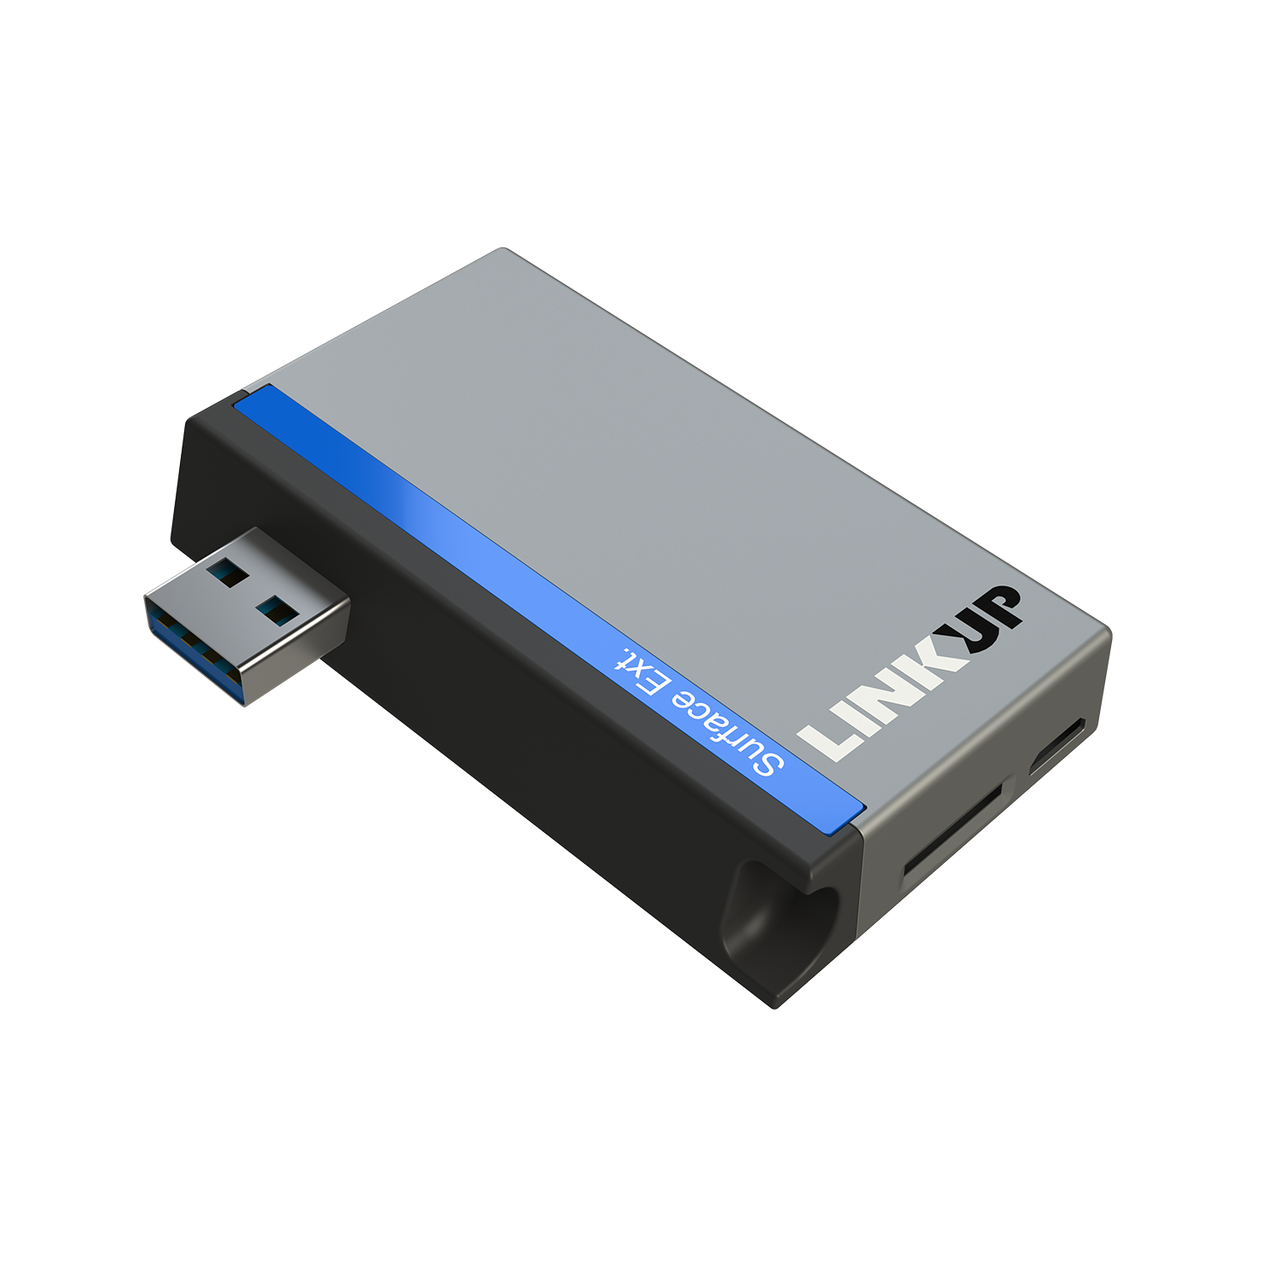 SanFlash PRO USB 3.0 Card Reader Works for RED Hydrogen One Adapter to Directly Read at 5Gbps Your MicroSDHC MicroSDXC Cards